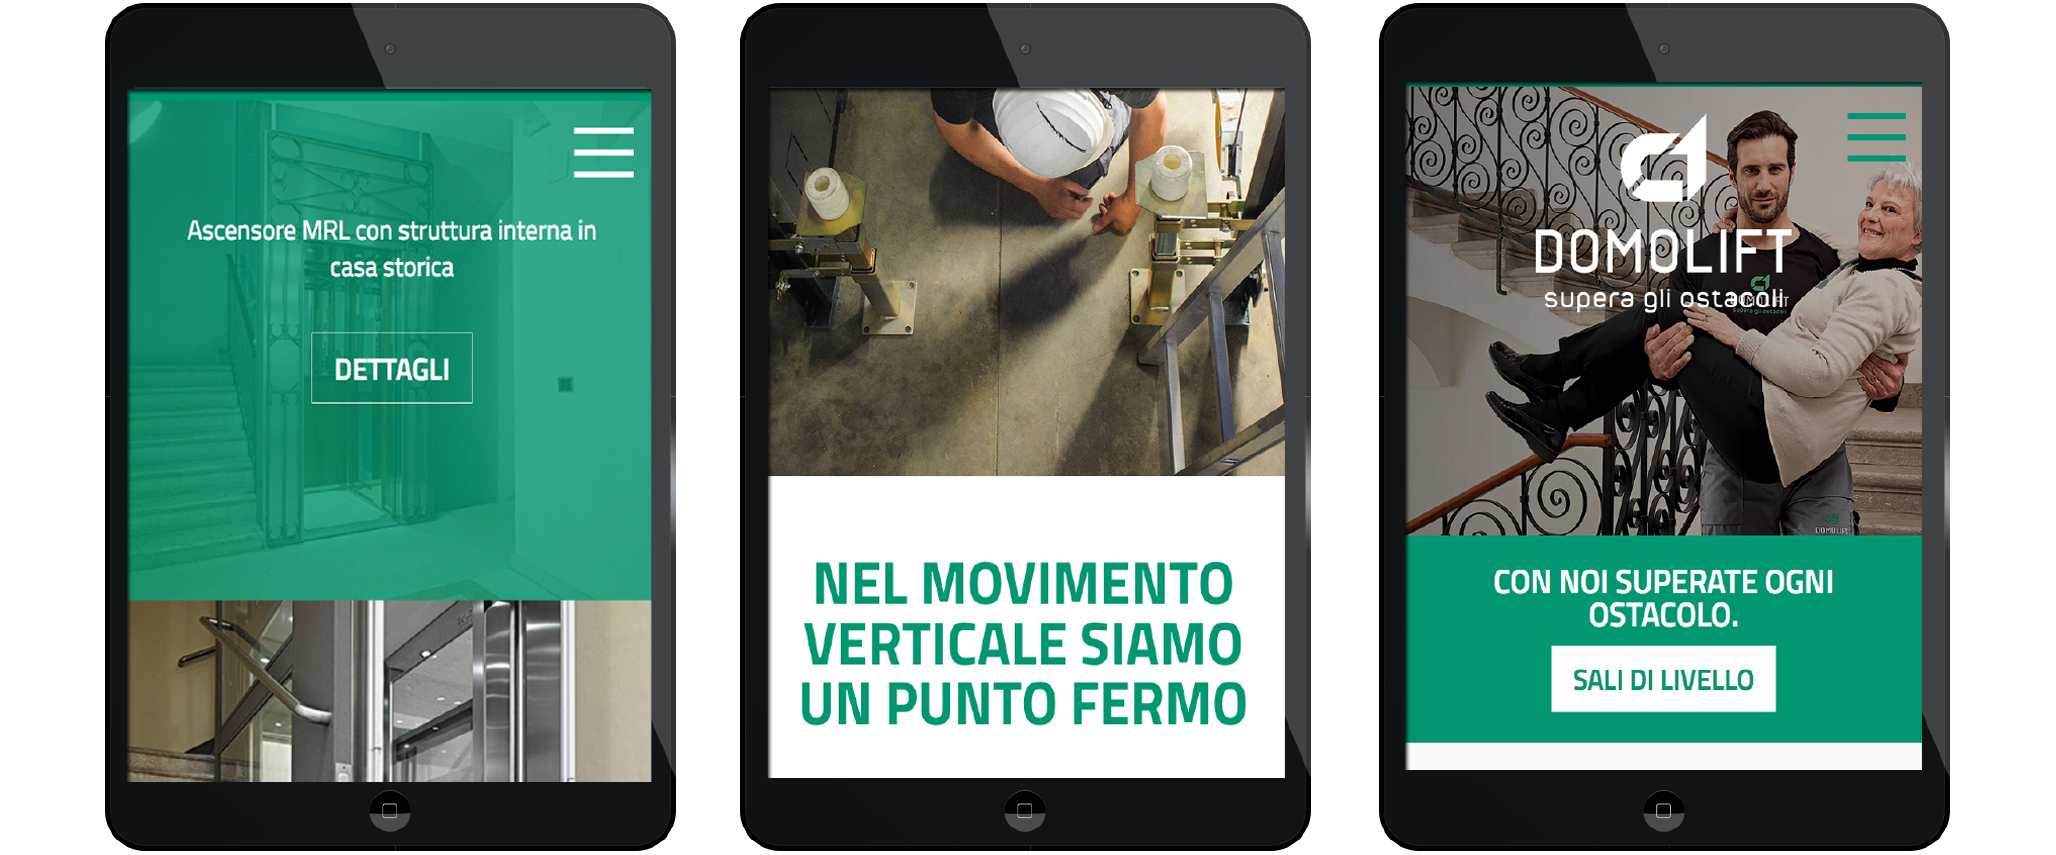 04_ipad_domolift_plus_communications_trento